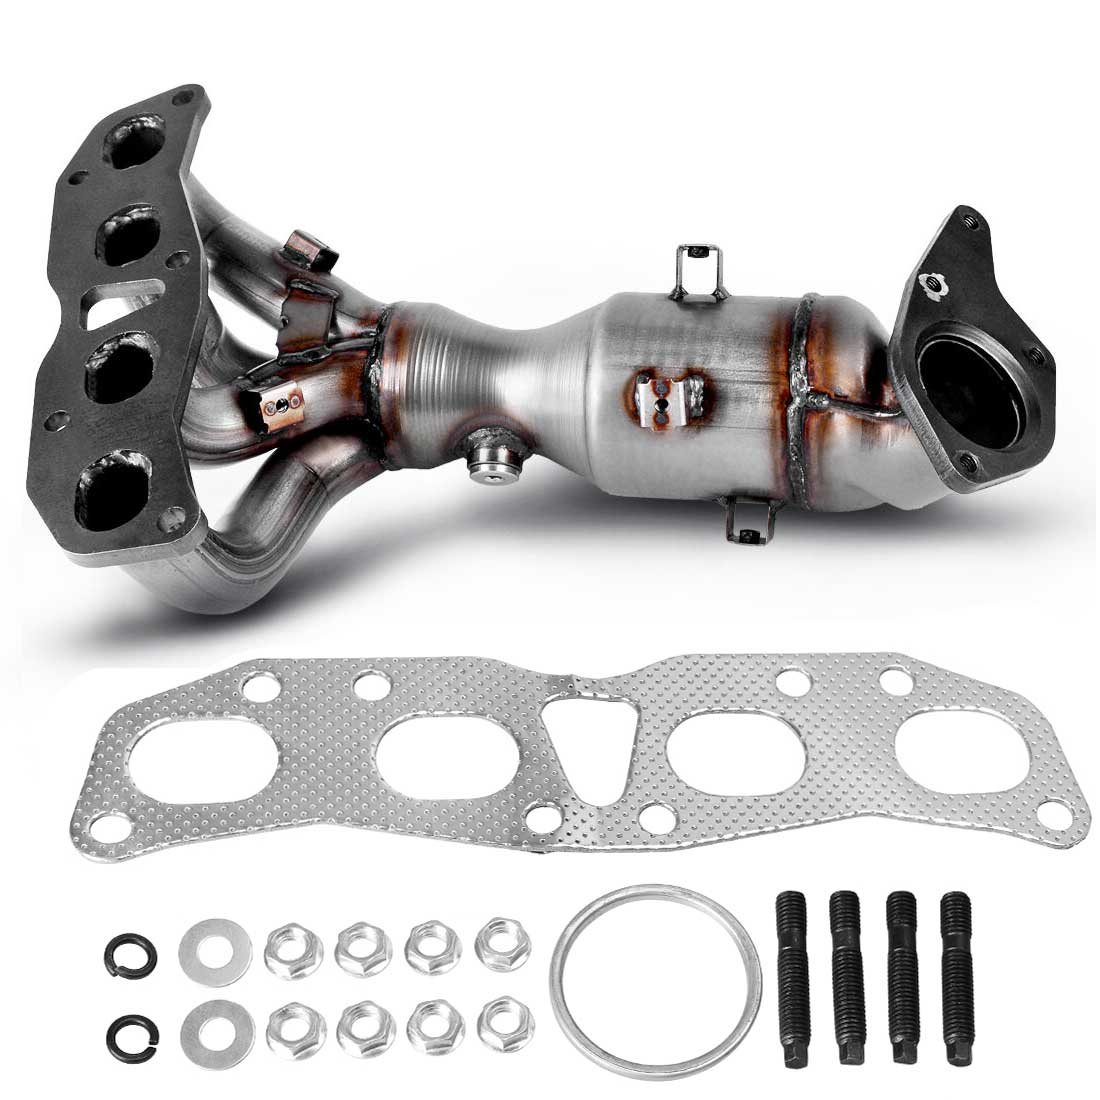 New Exhaust Manifold For 2007-2013 Nissan Altima 2.5L With Catalytic Converter